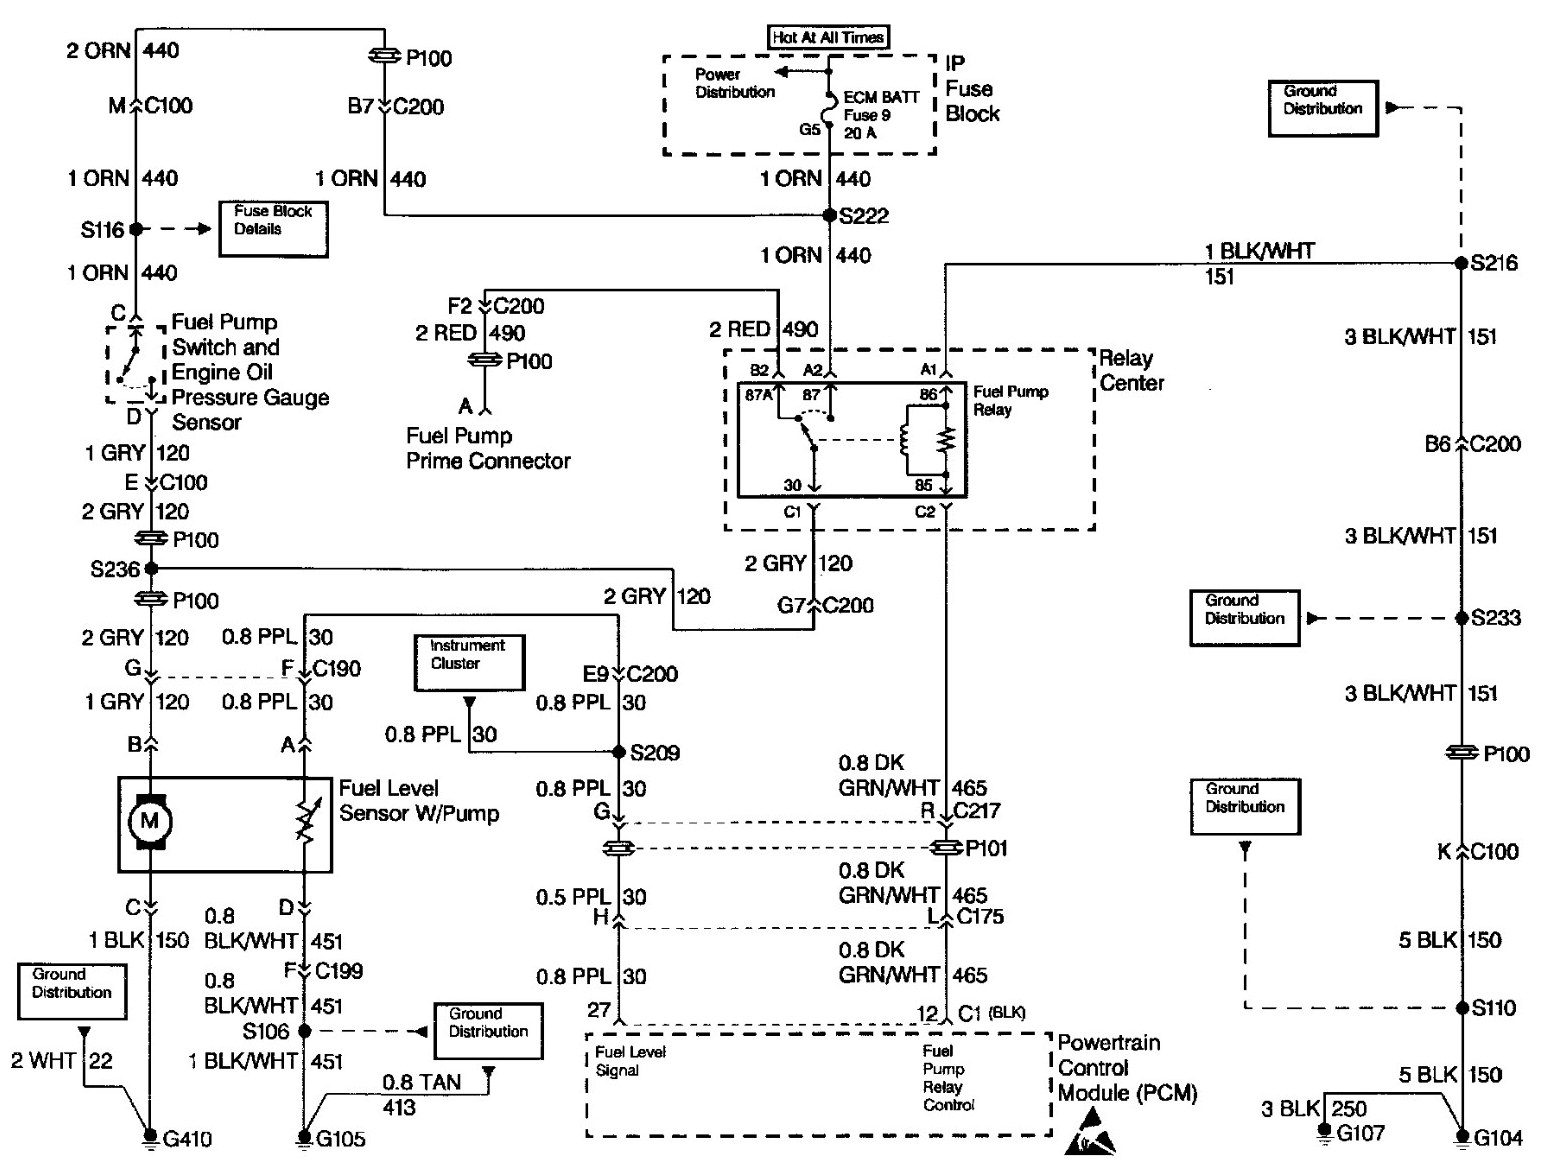 Fuel Pump Wiring Diagram 1998 Chevy Truck from ww2.justanswer.com